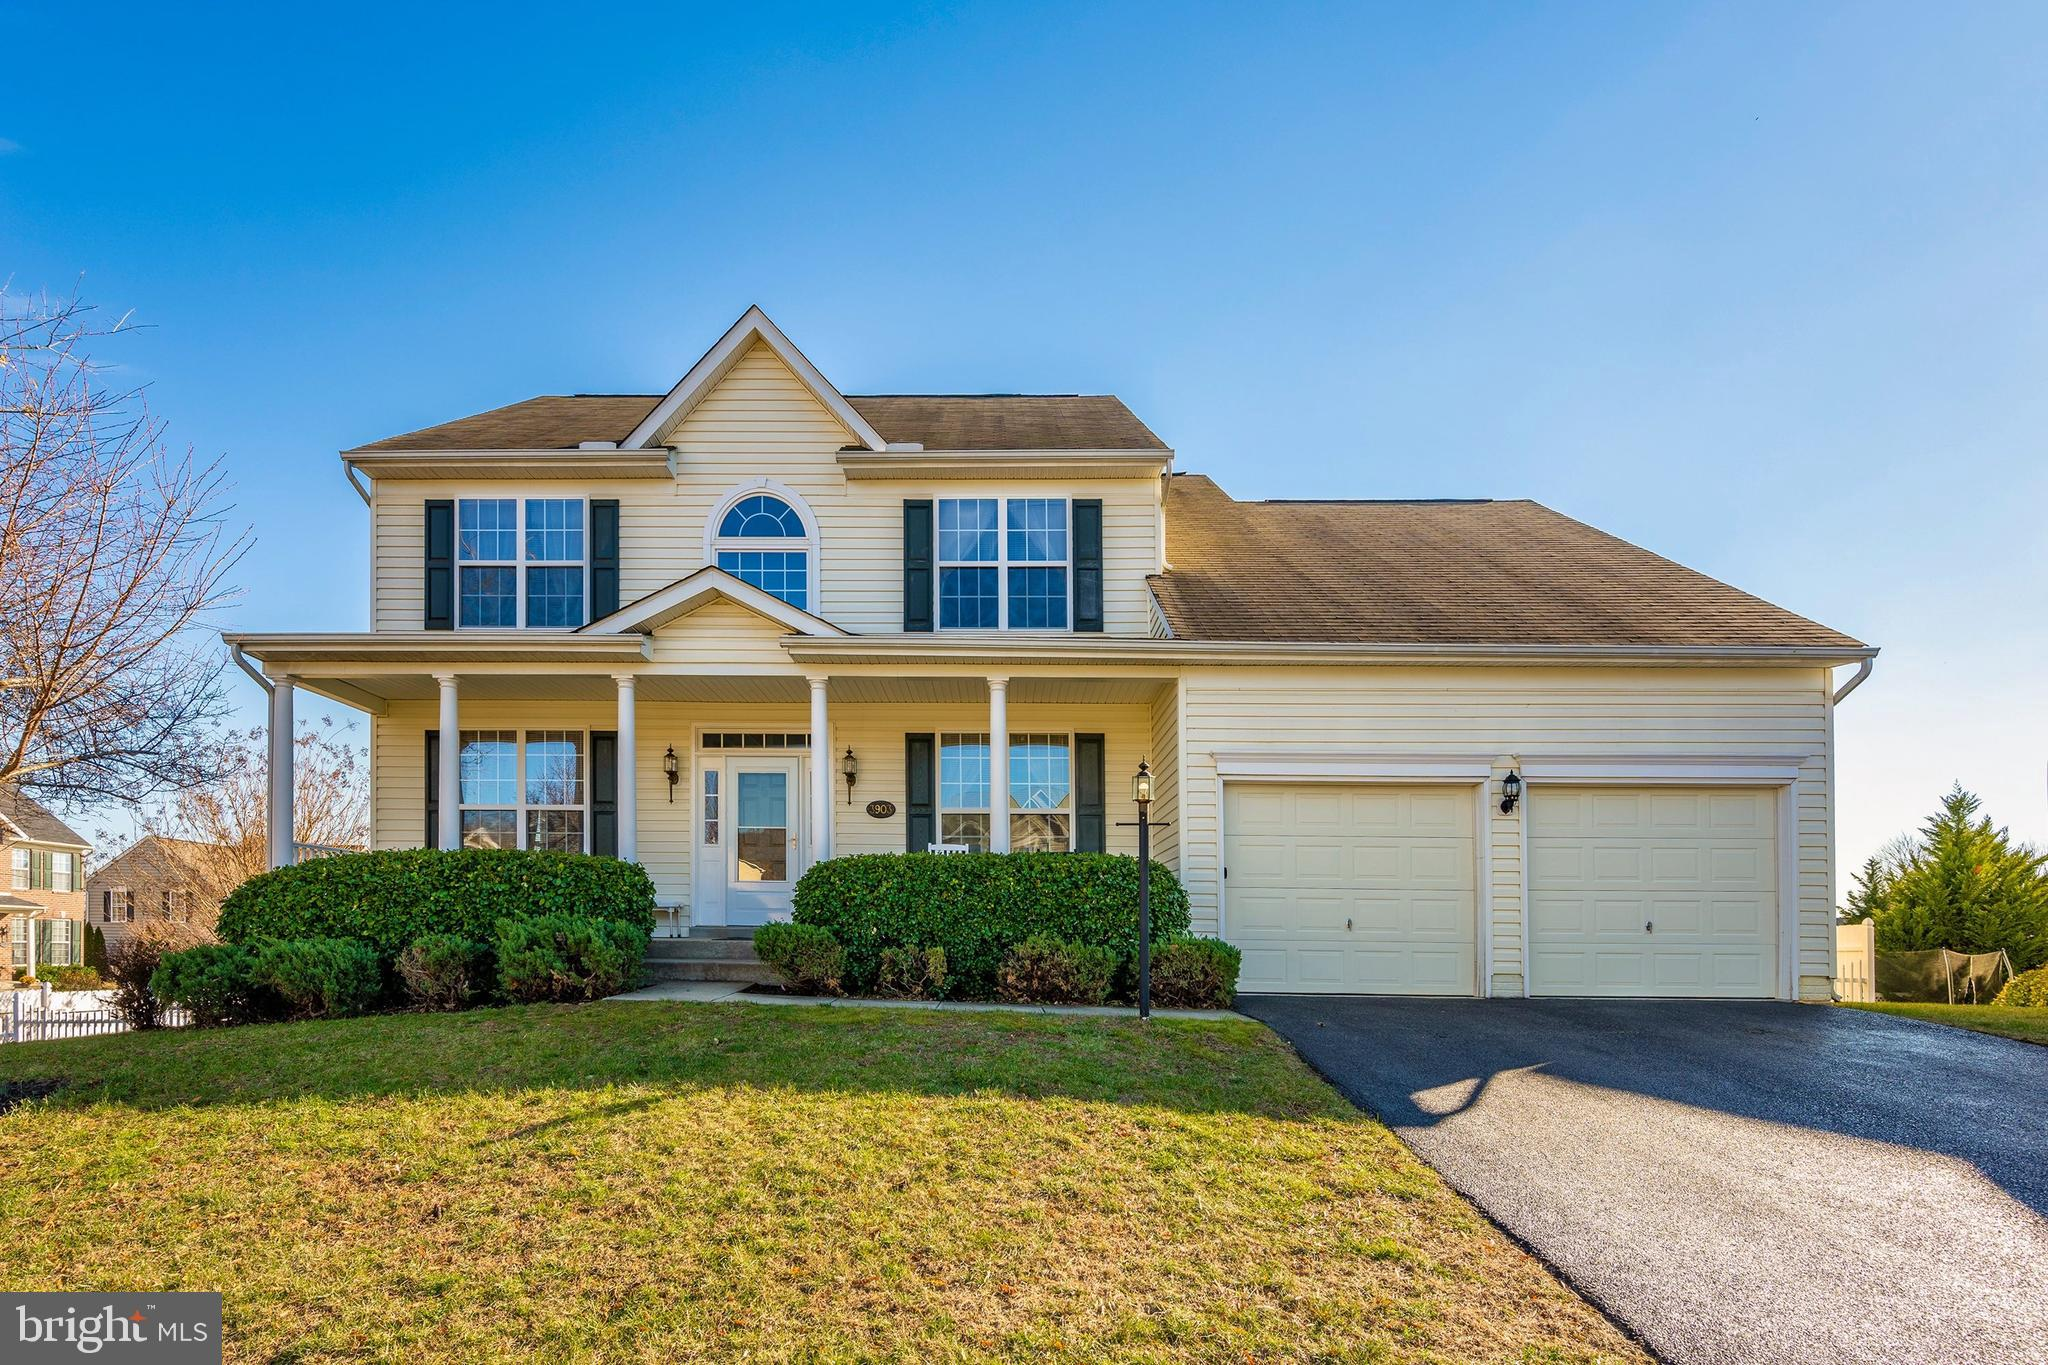 3903 BOATMANS CIRCLE, POINT OF ROCKS, MD 21777